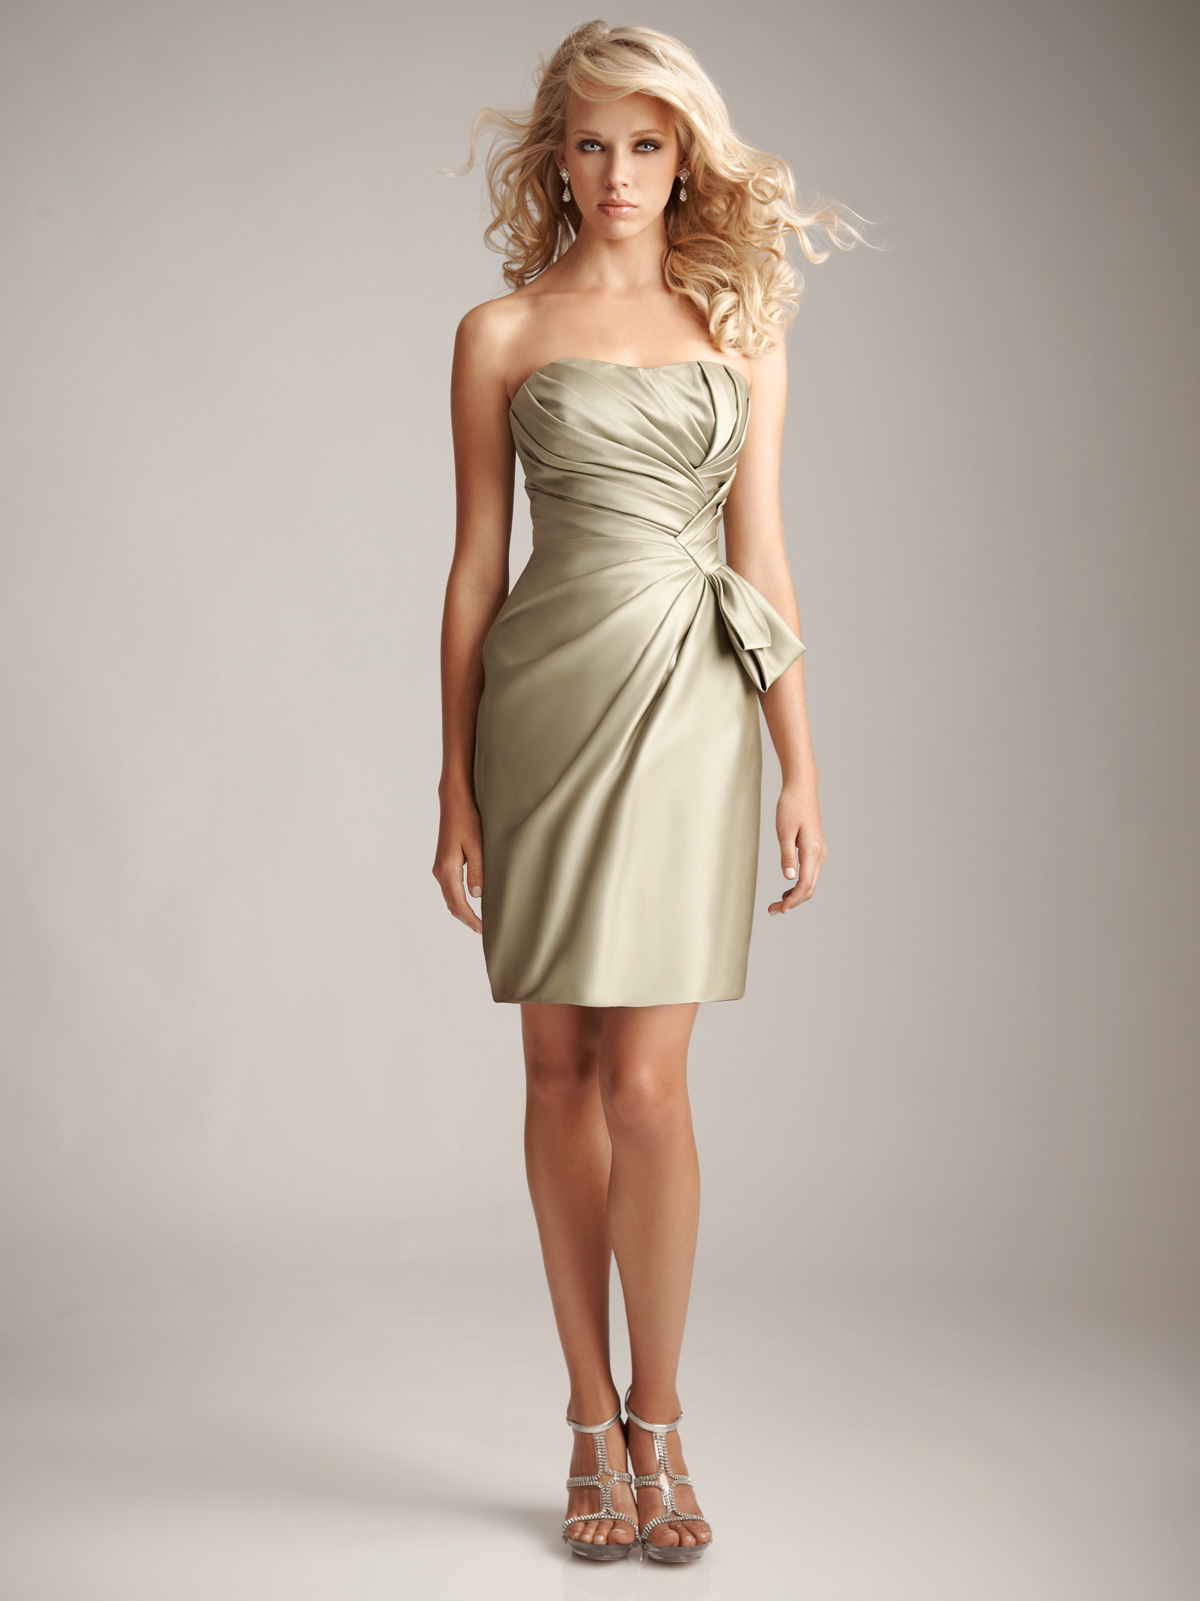 Gorgeous satin bridesmaids dress short pleated champagne bridesmaid dress ombrellifo Images